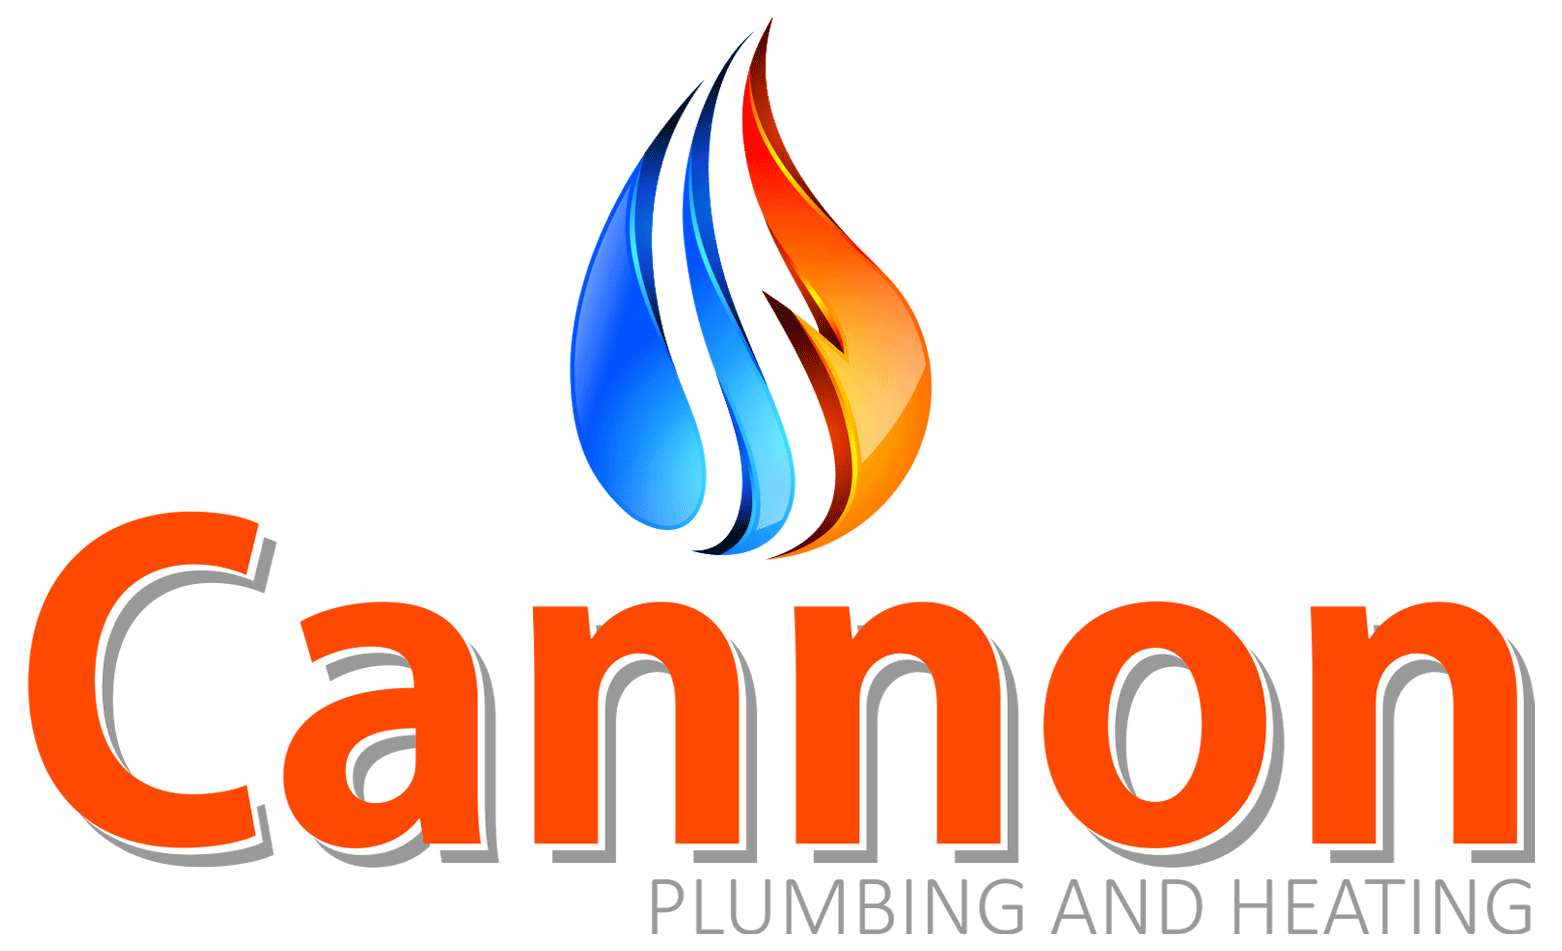 Cannon Plumbing and Heating Logo